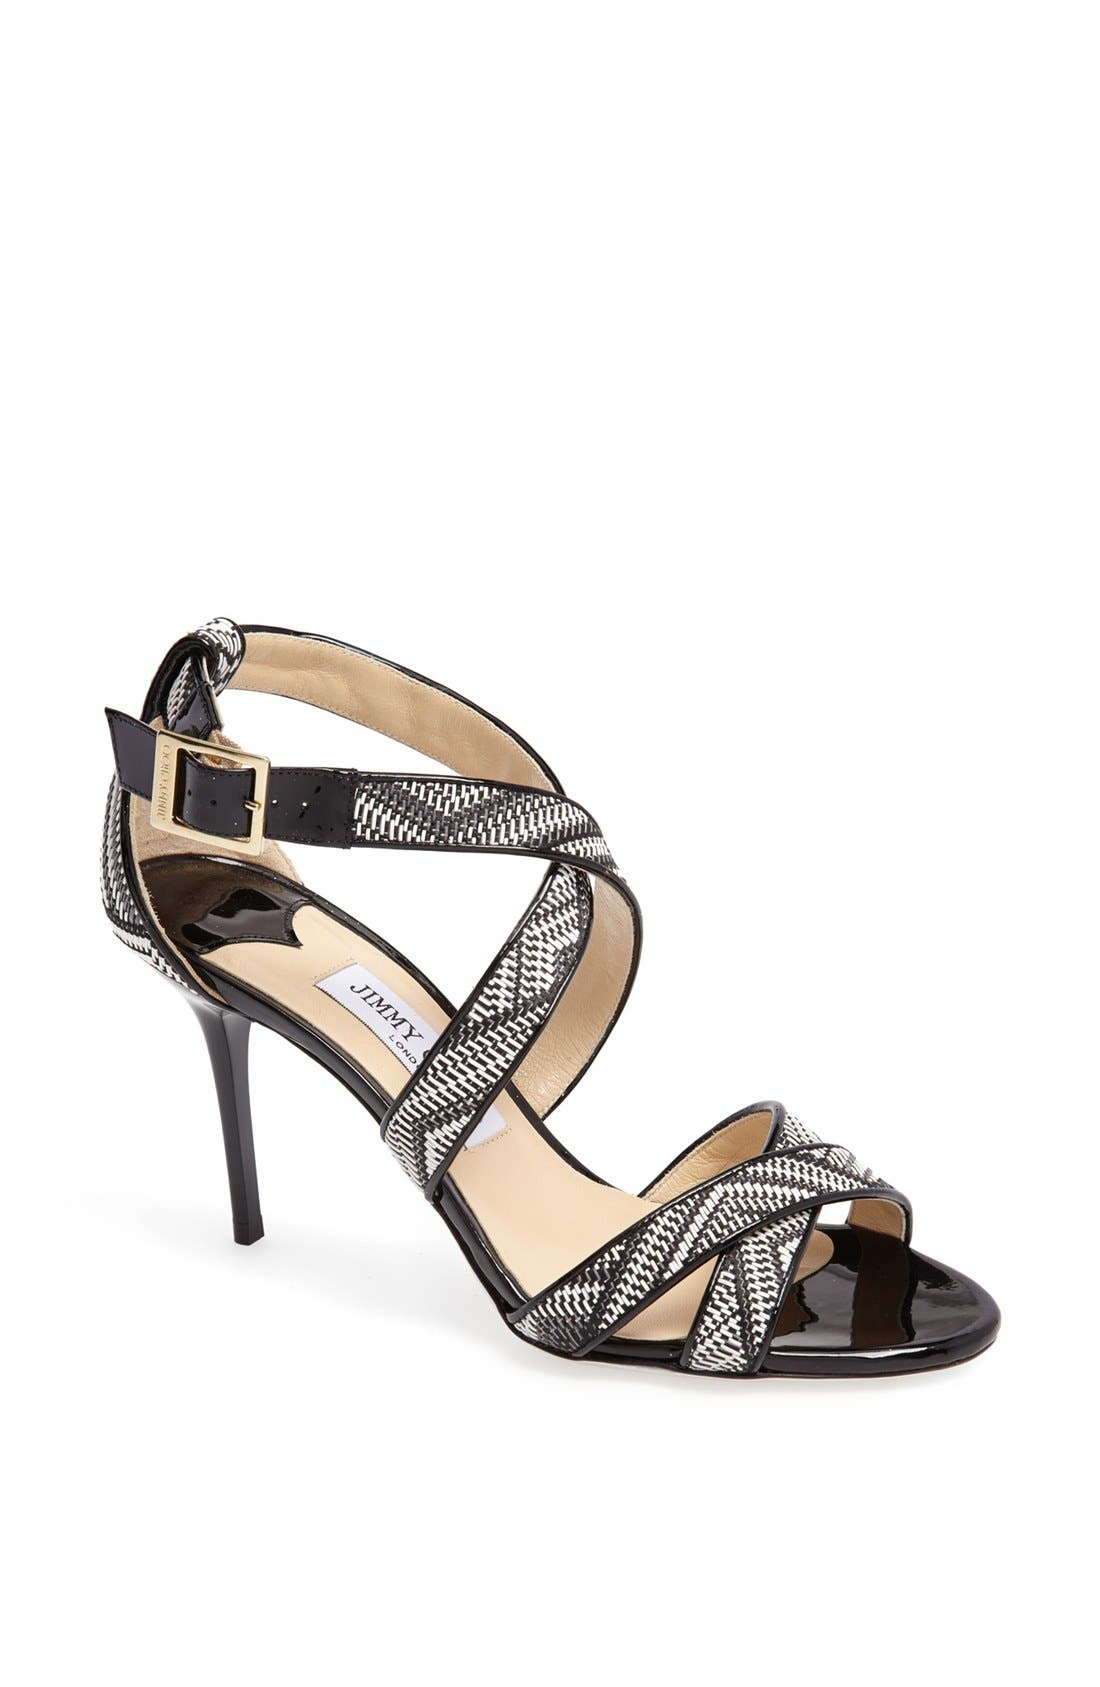 Main Image - Jimmy Choo 'Louise' Sandal